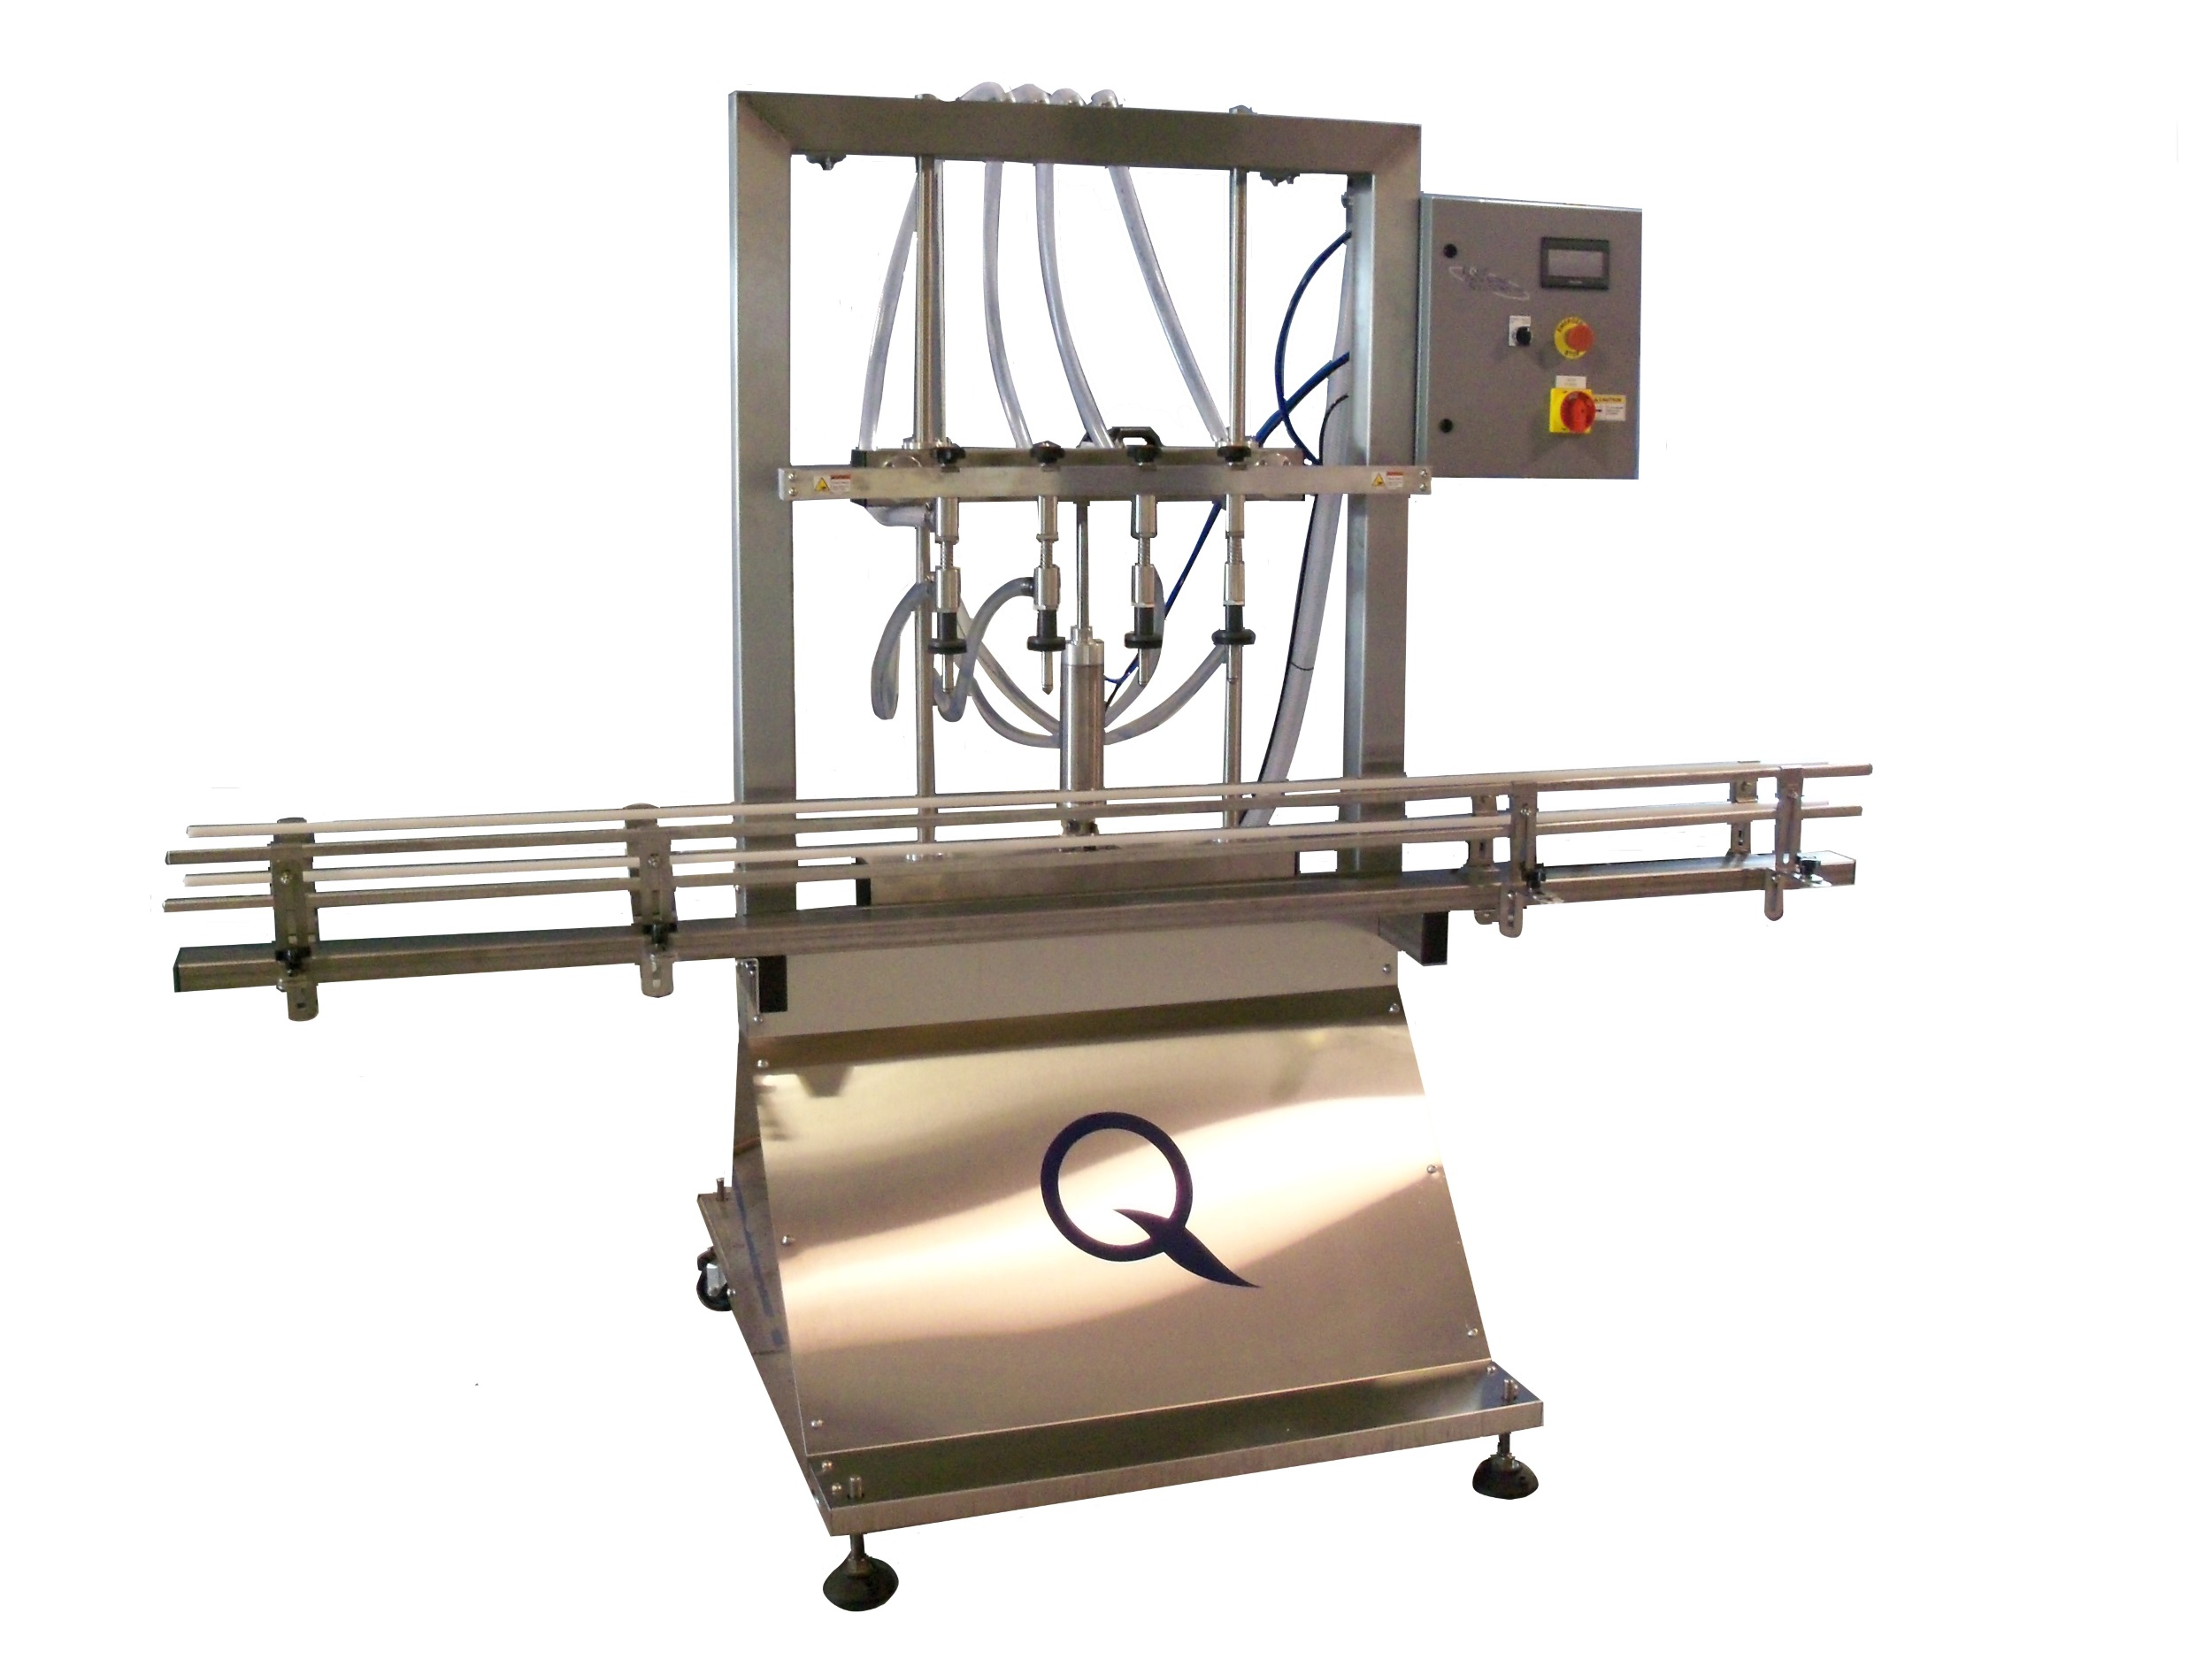 Overflow Filling Machine with Full Frame